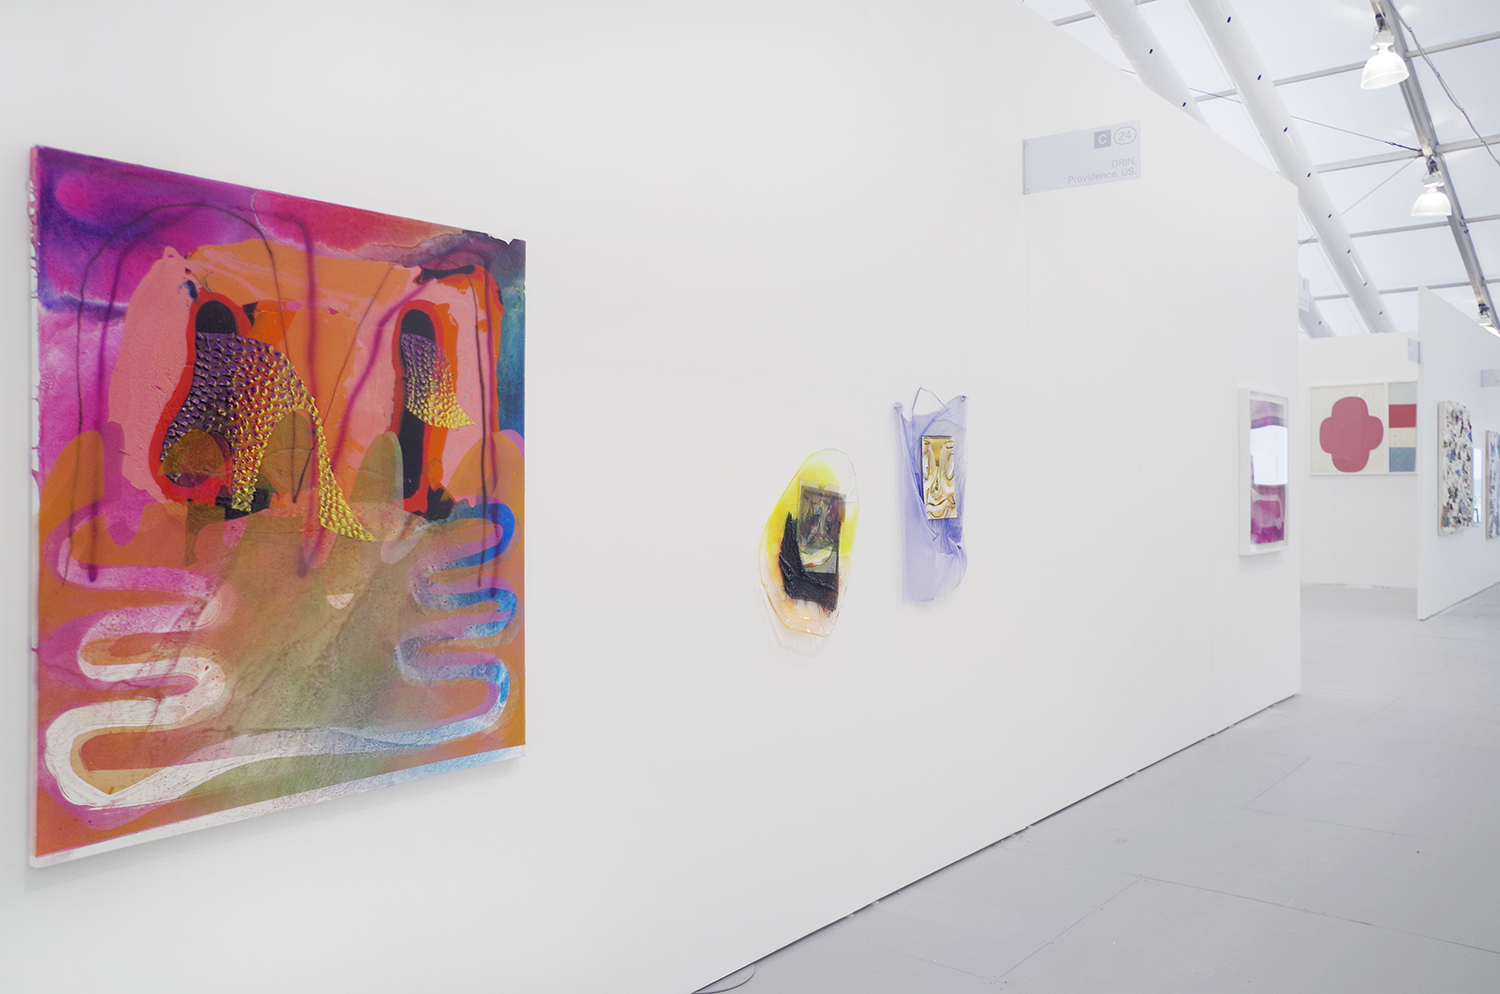 06 GRIN at UNTITLED 2016.jpg